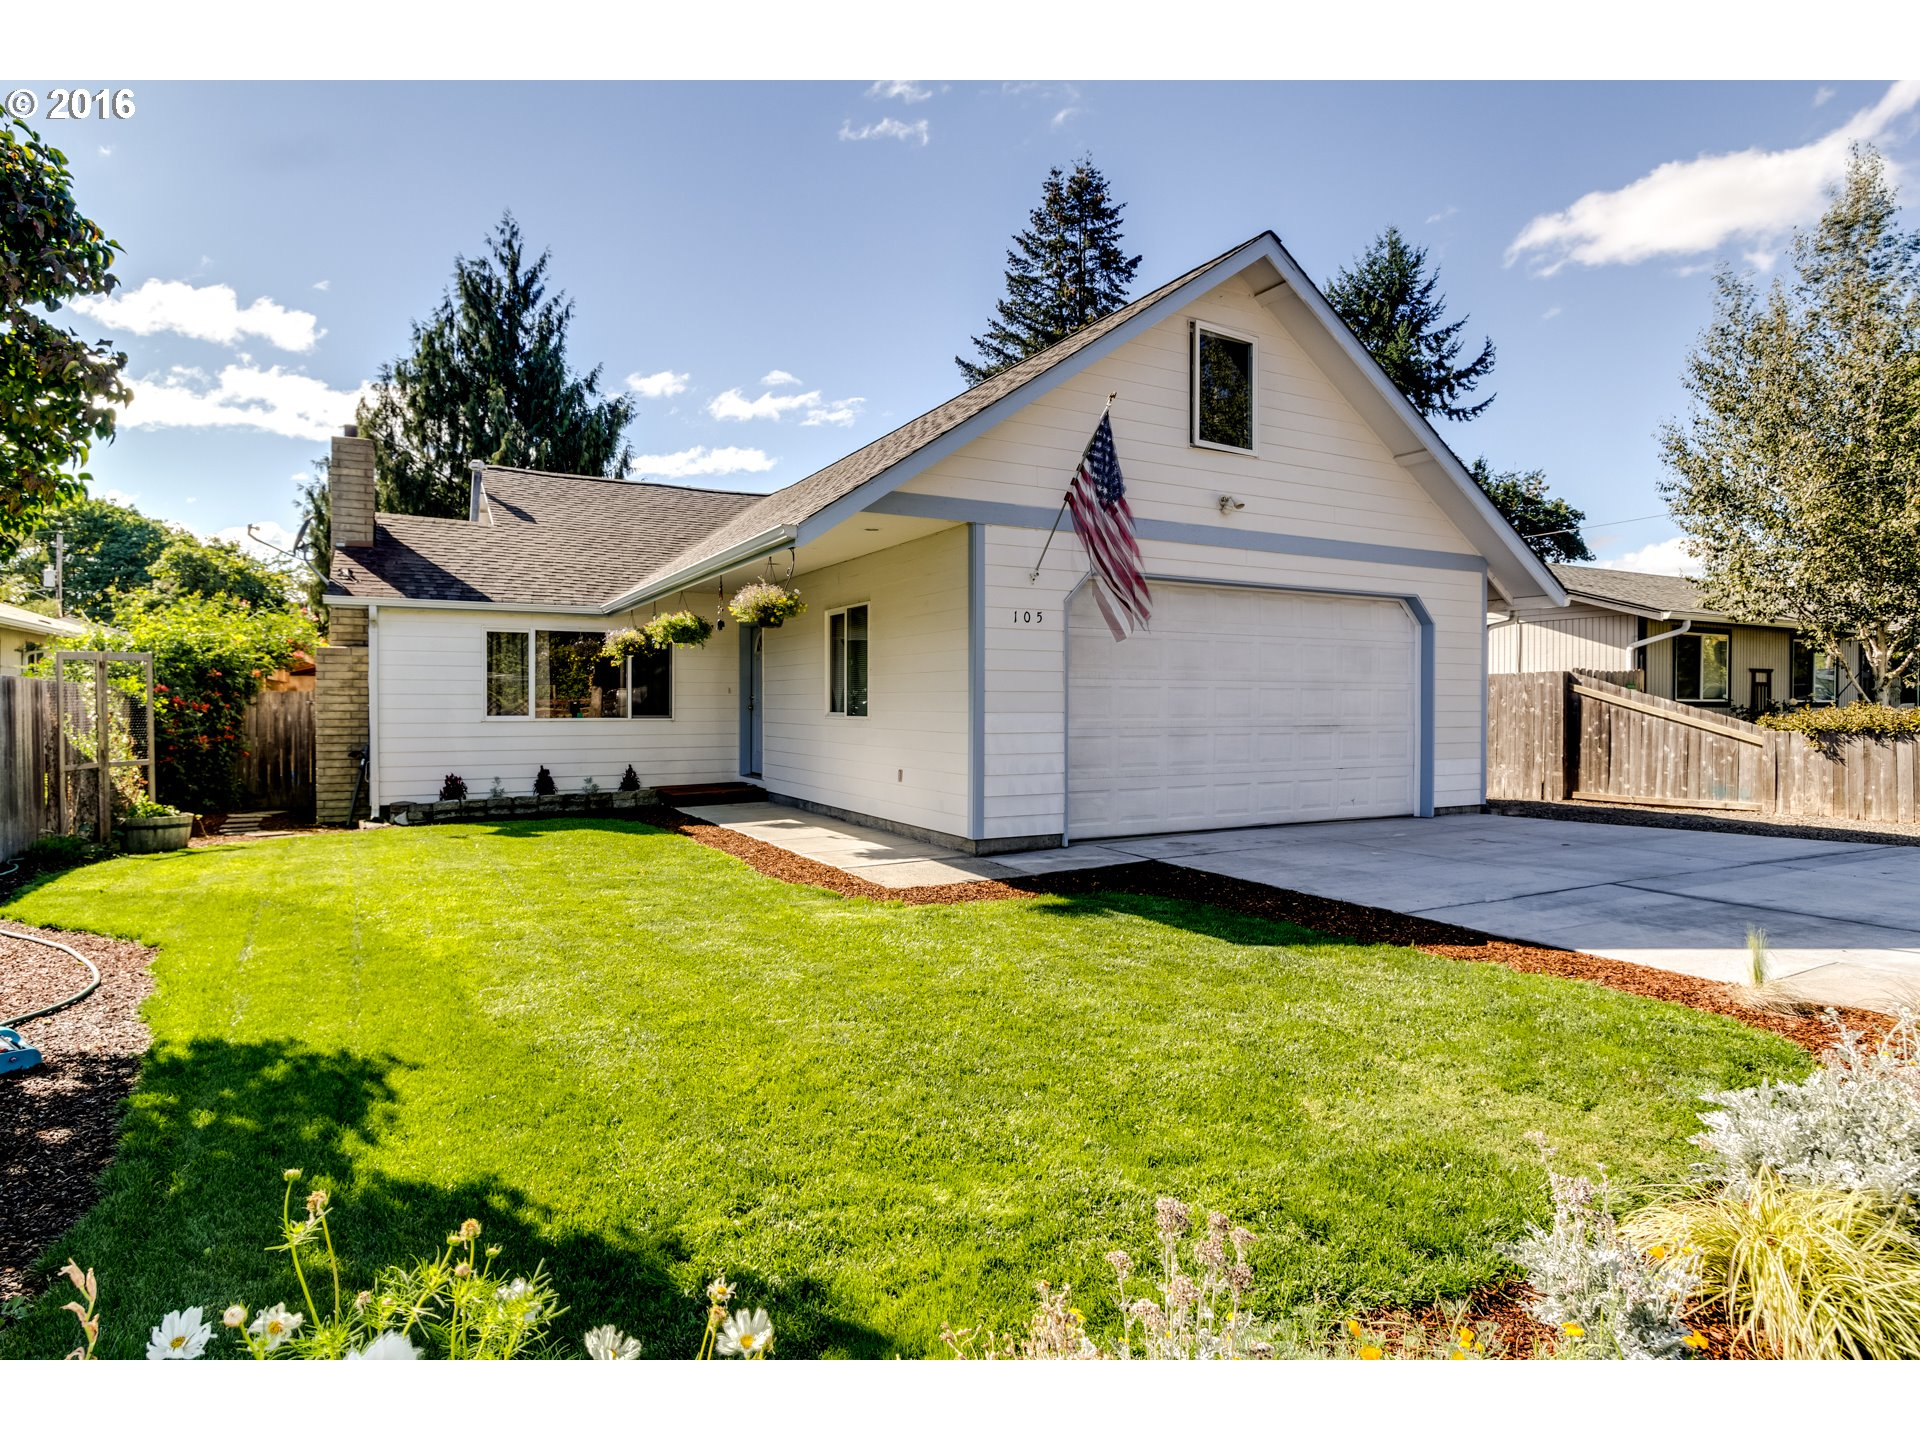 105 N 8TH ST, Creswell, OR 97426